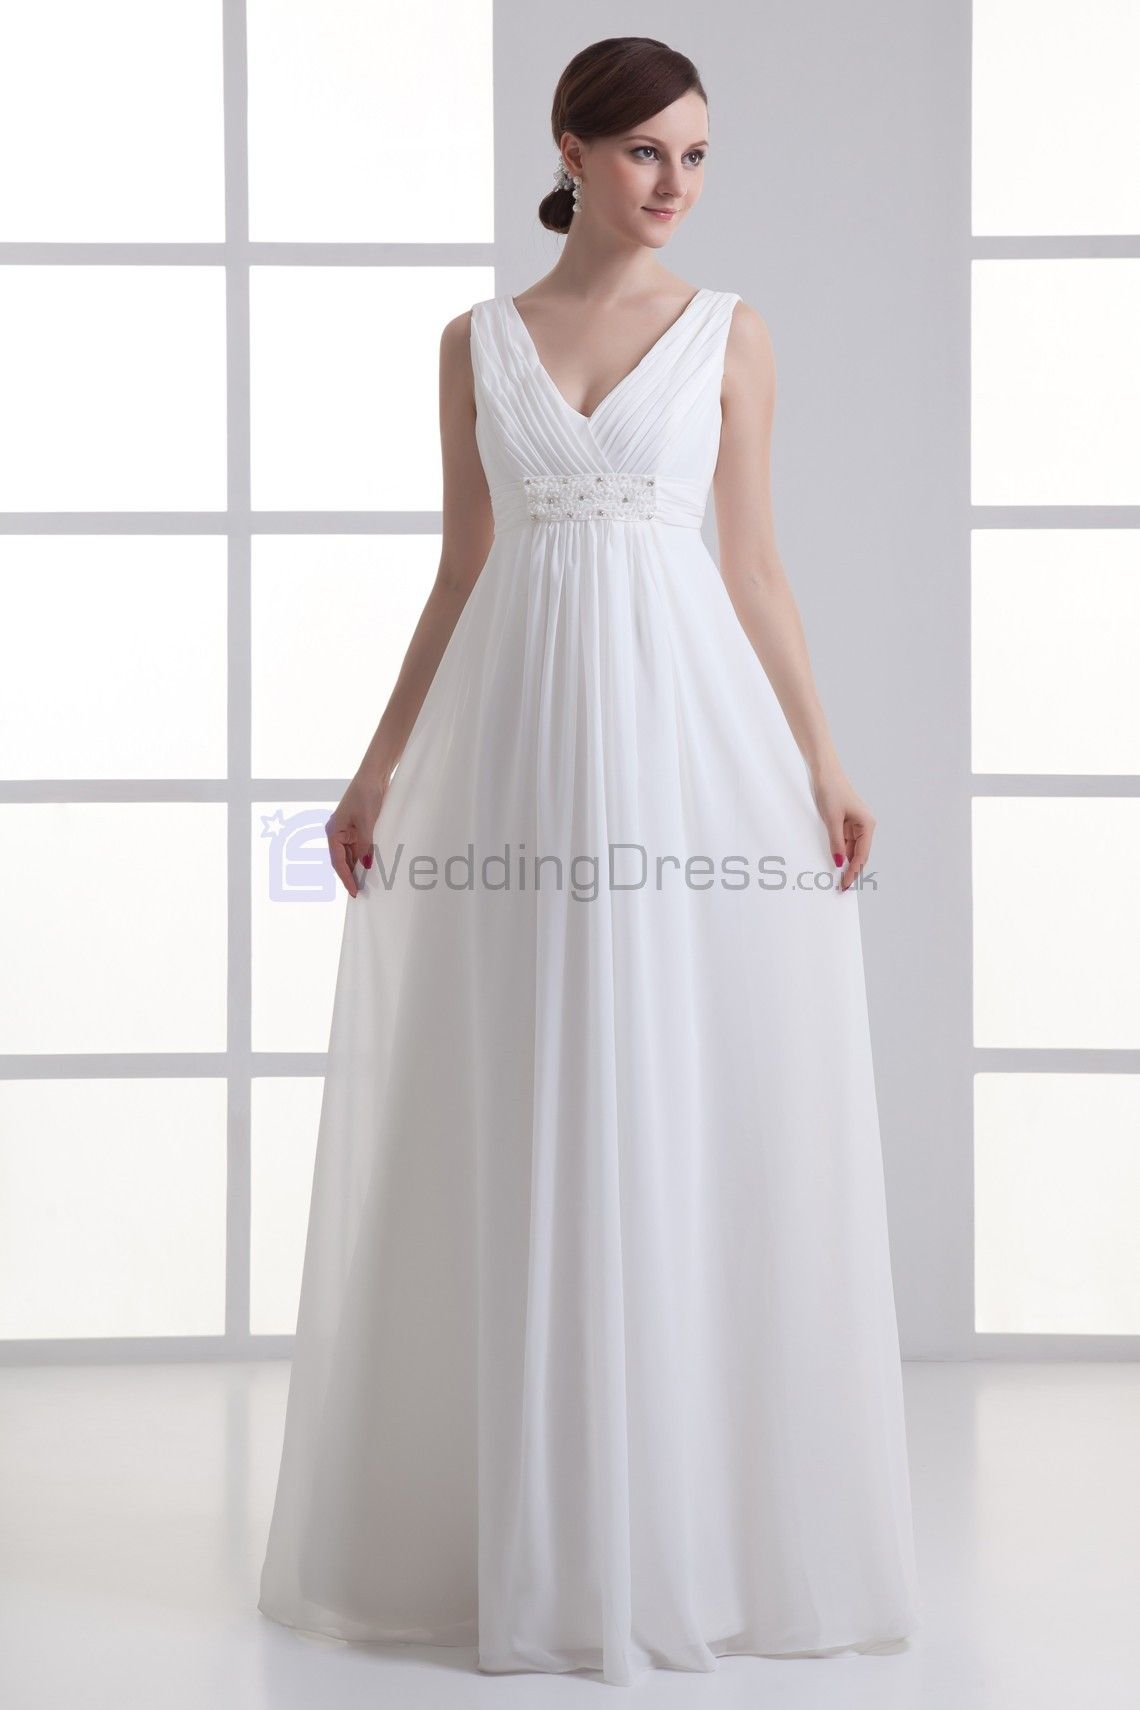 wedding for older women | wedding-dresses-for-older-women-empire ...